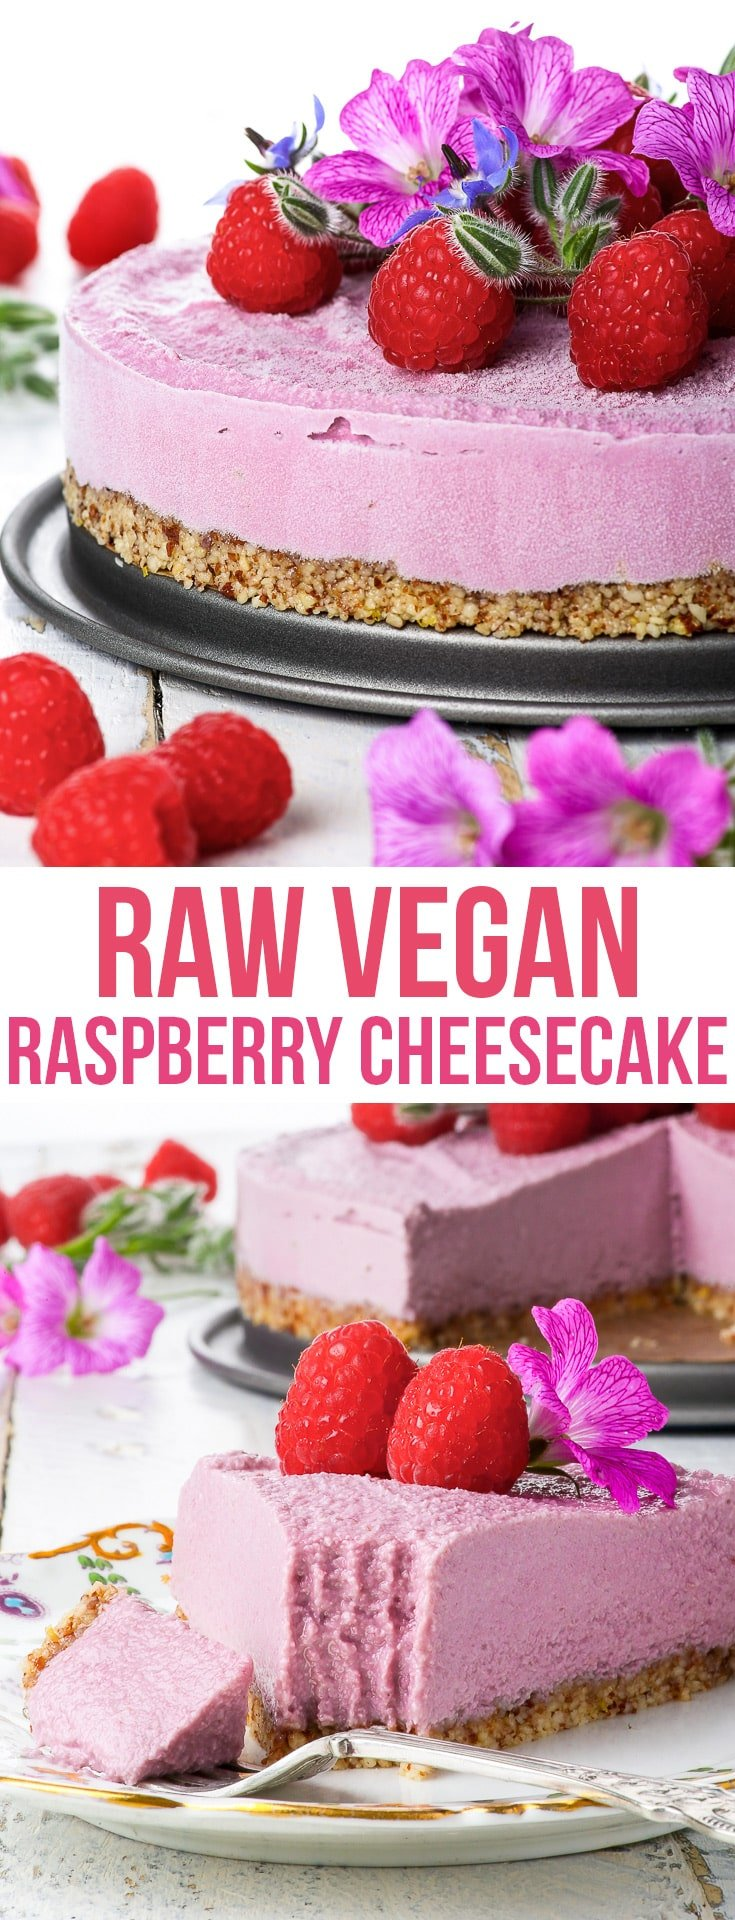 Raw Vegan Raspberry Cheesecake {gluten, dairy, egg, soy, peanut & refined sugar free, vegan, paleo} - This raw vegan cheesecake is the perfect summer dessert: creamy, refreshing and perfectly balanced due to the slight tartness of the raspberries. With a crunchy almond tart crust and a creamy raspberry cashew cream layer. This healthy no-bake dessert couldn't be easier to make! Vegan dessert recipe. Paleo dessert. Healthy recipe. #raw #vegan #paleo #healthyrecipes #dessert #food